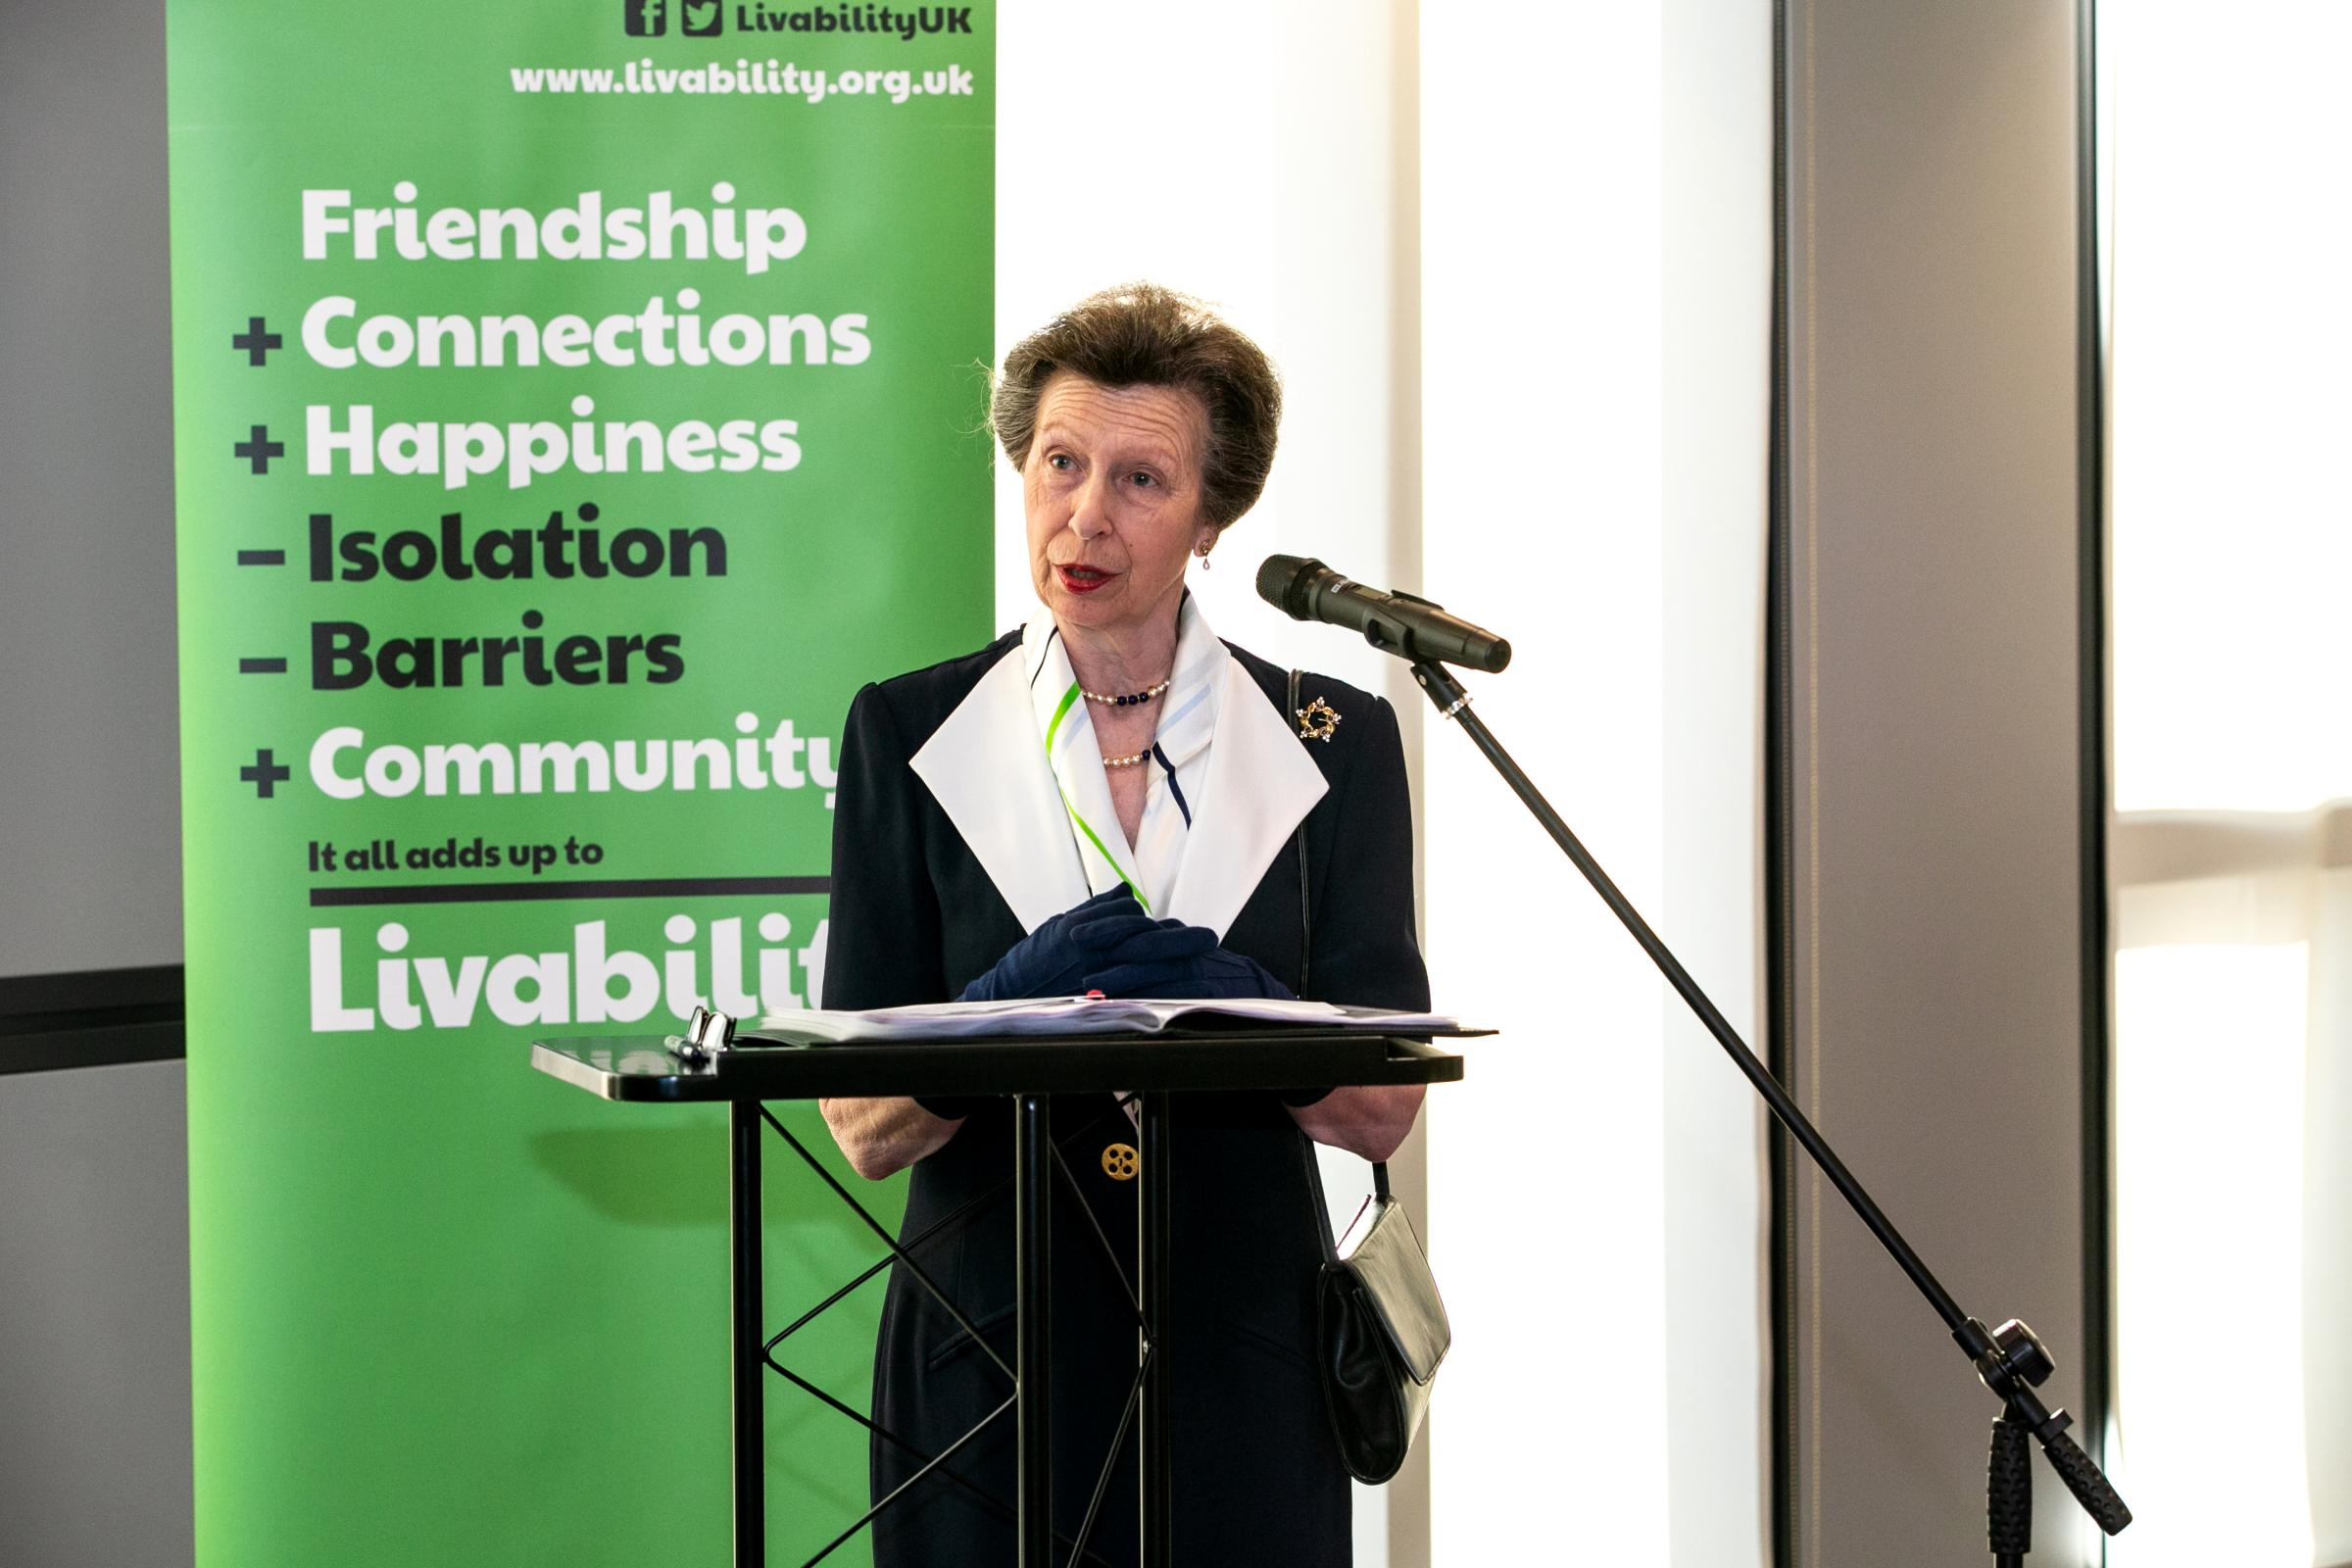 HRH The Princess Royal visited the Livability exhibition